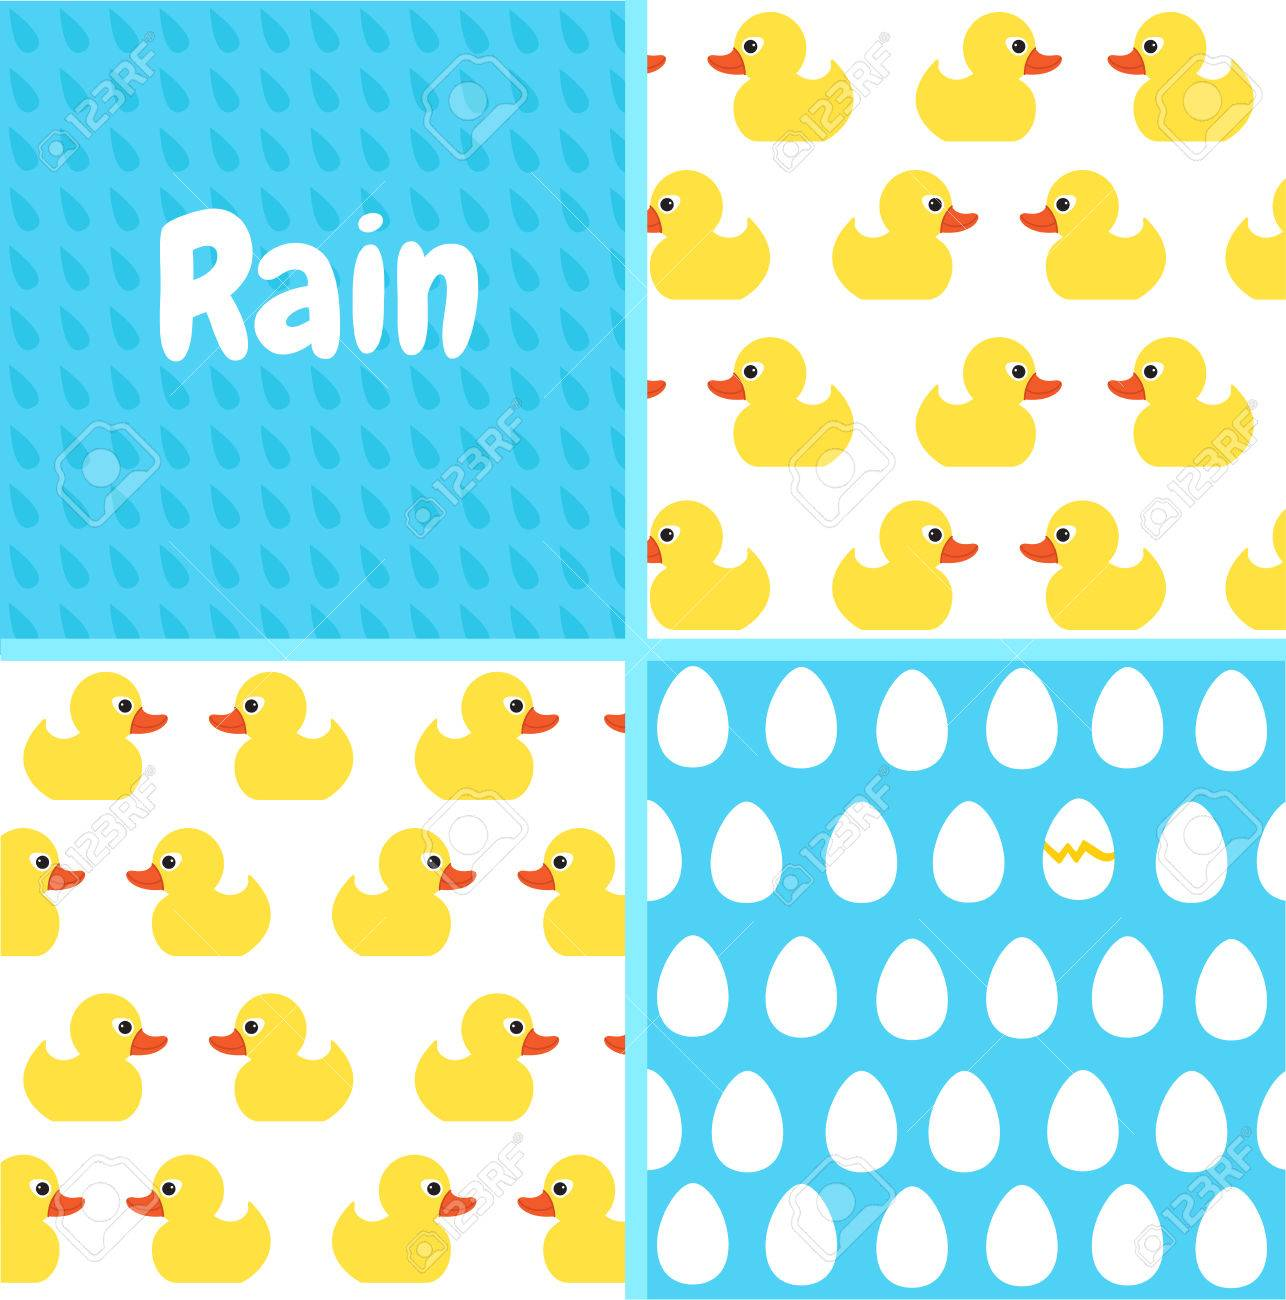 Drops Patterns Awesome Design Inspiration